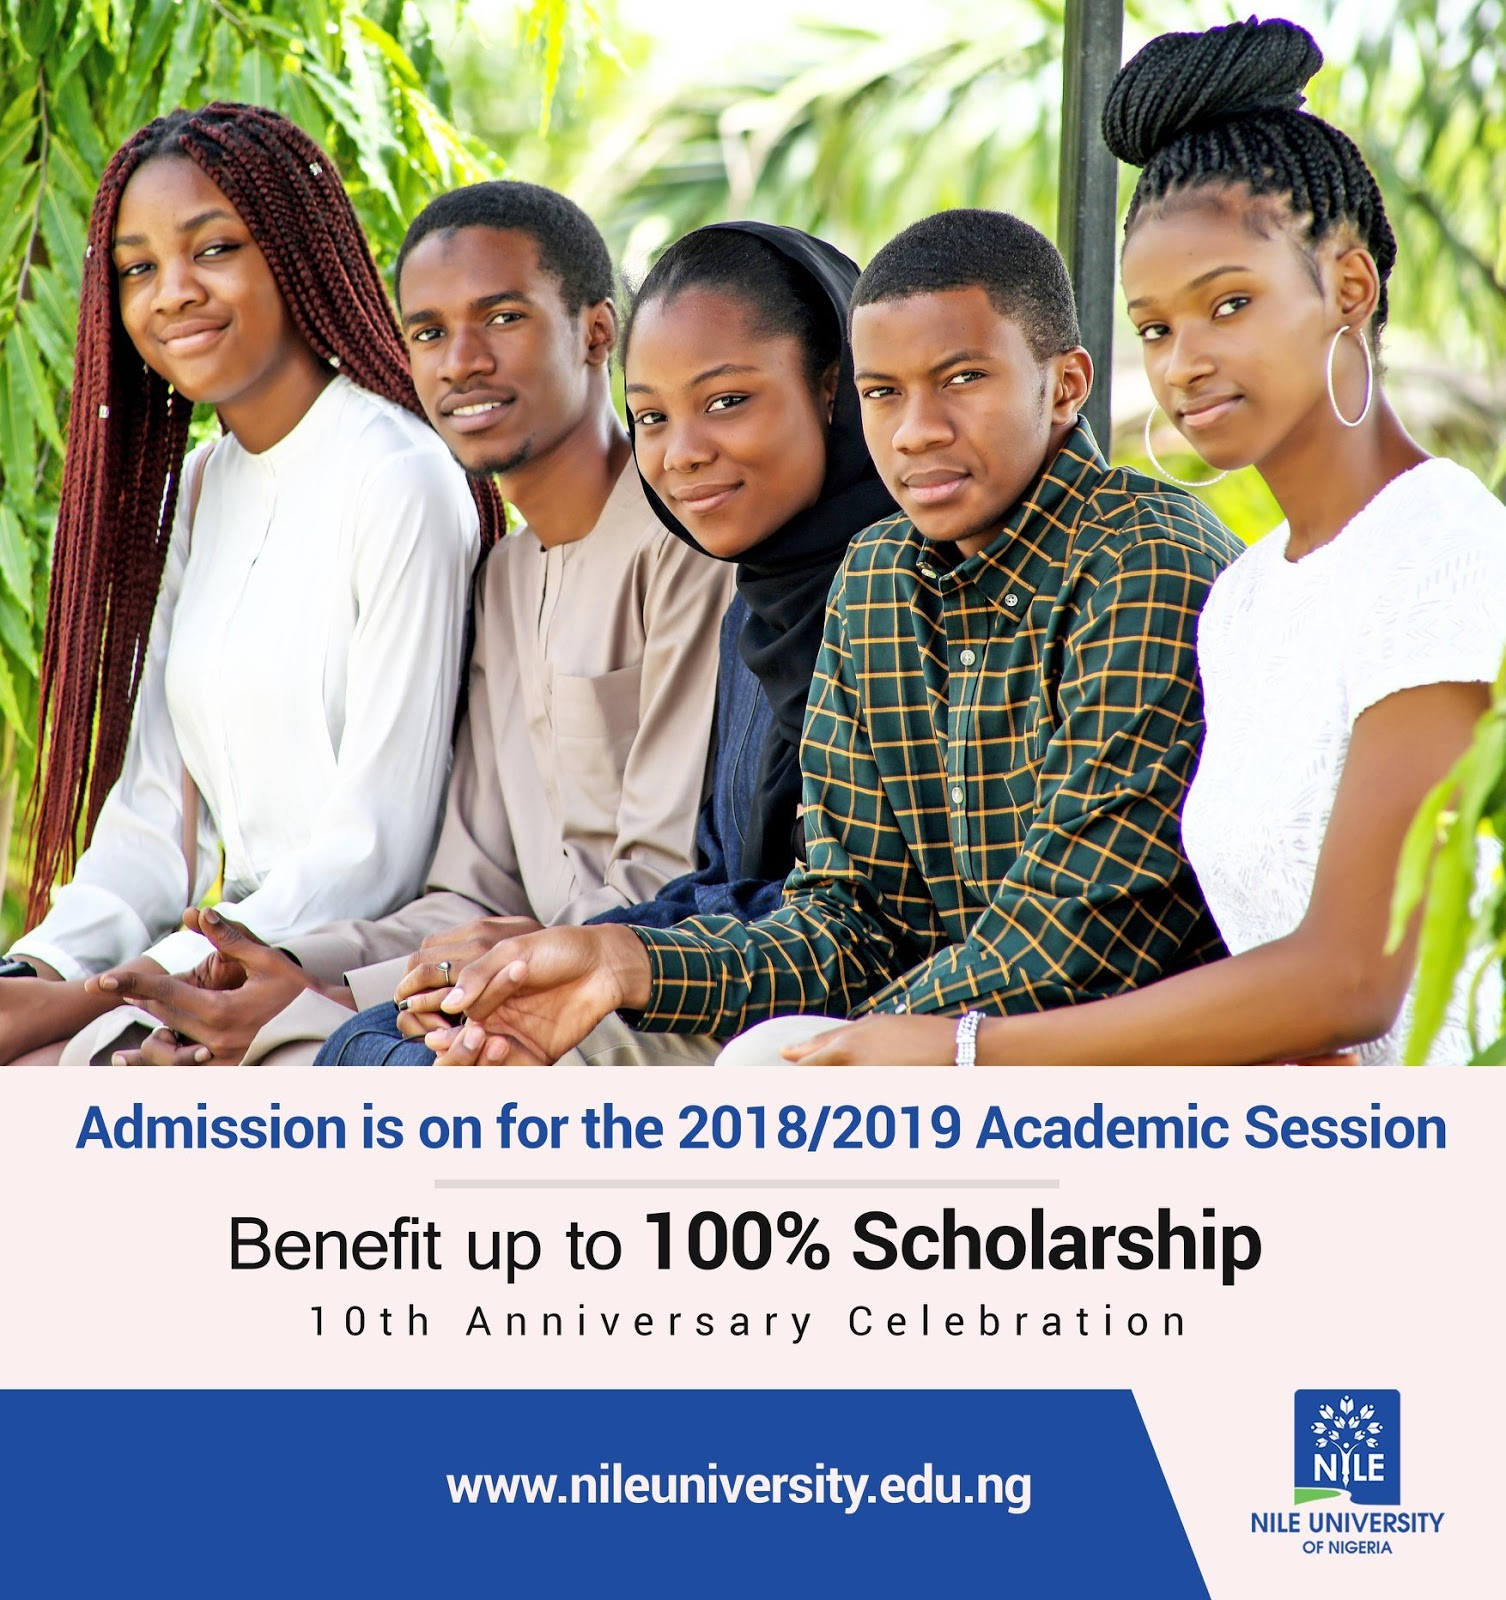 Nile University undergraduate admission